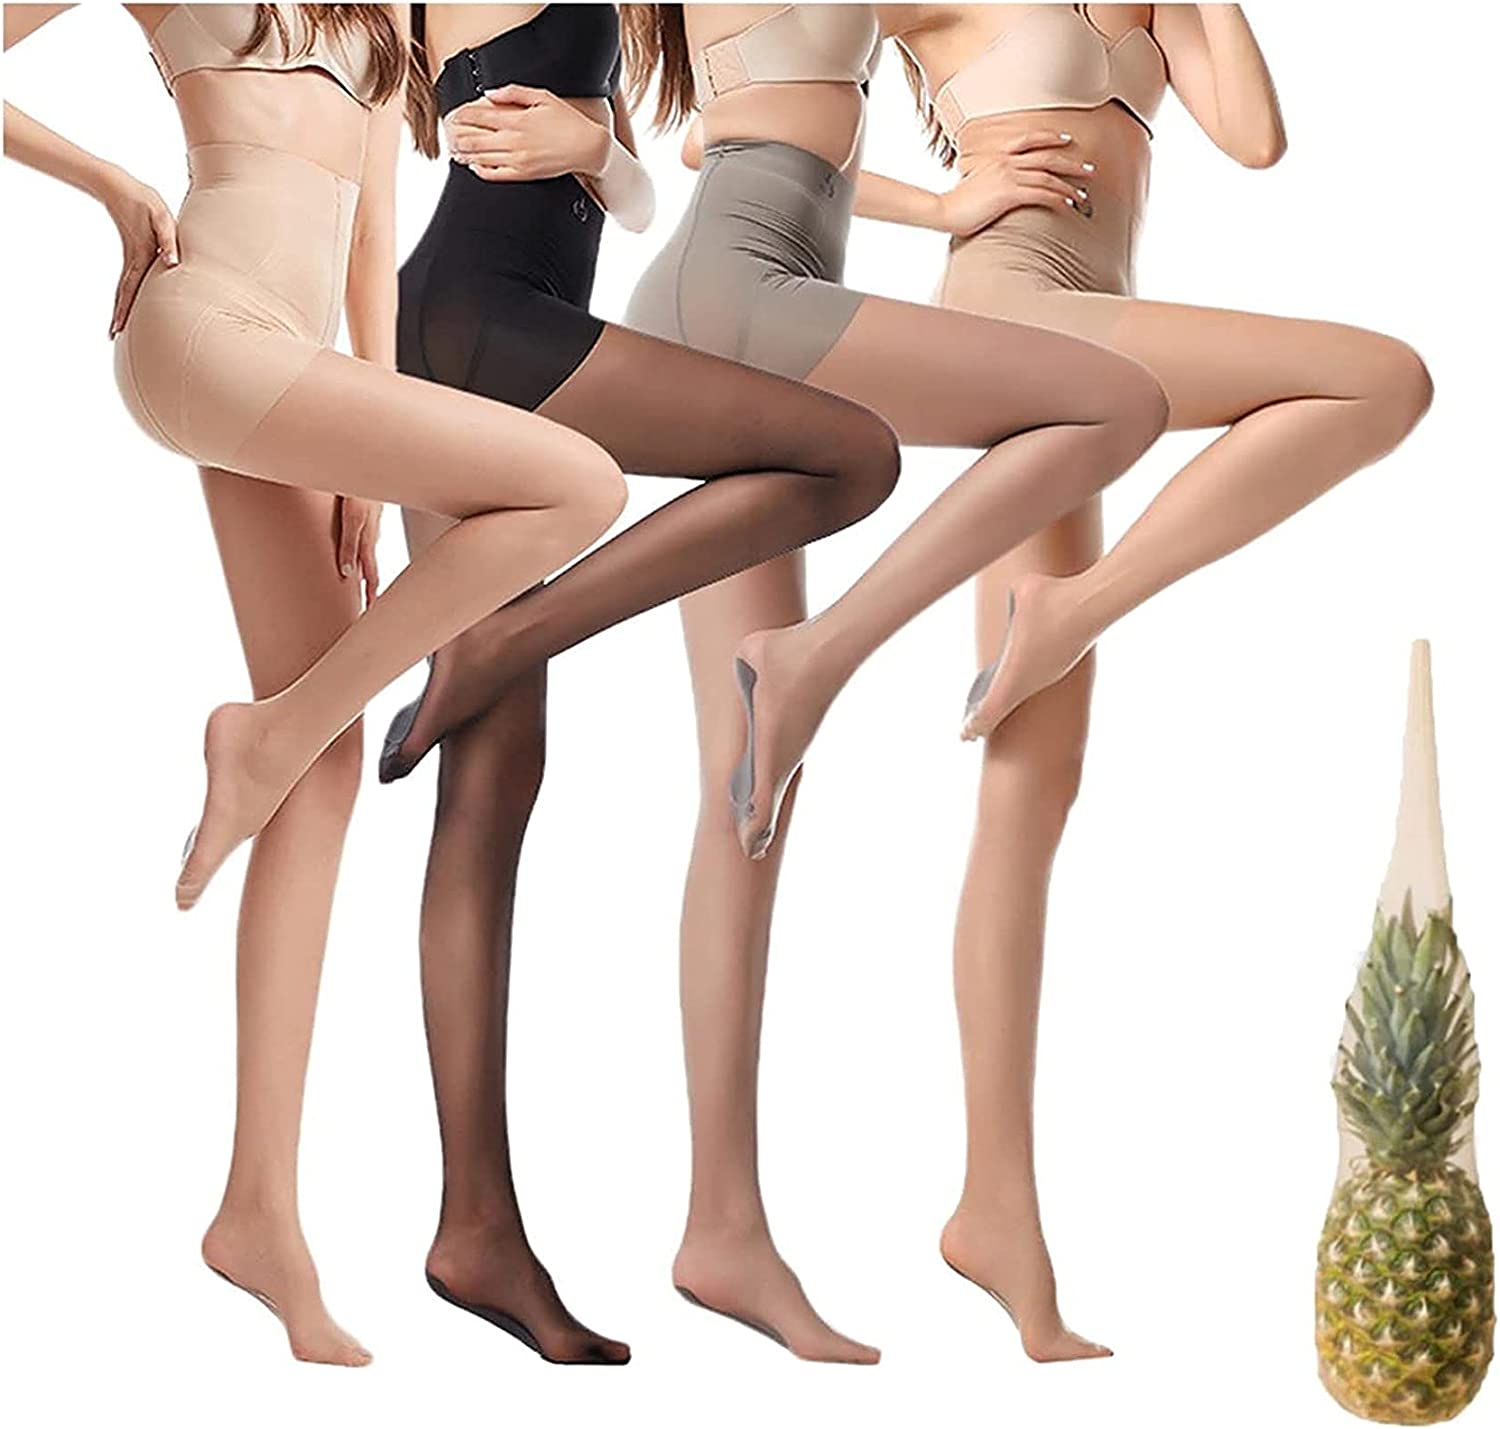 Universal Stretch Anti-Scratch Stockings,Ultra Invisible High Waist Pantyhose for Women,Womens Control Top Reinforced Toe Pantyhose,Sexy Sheer Tights Silk Stockings